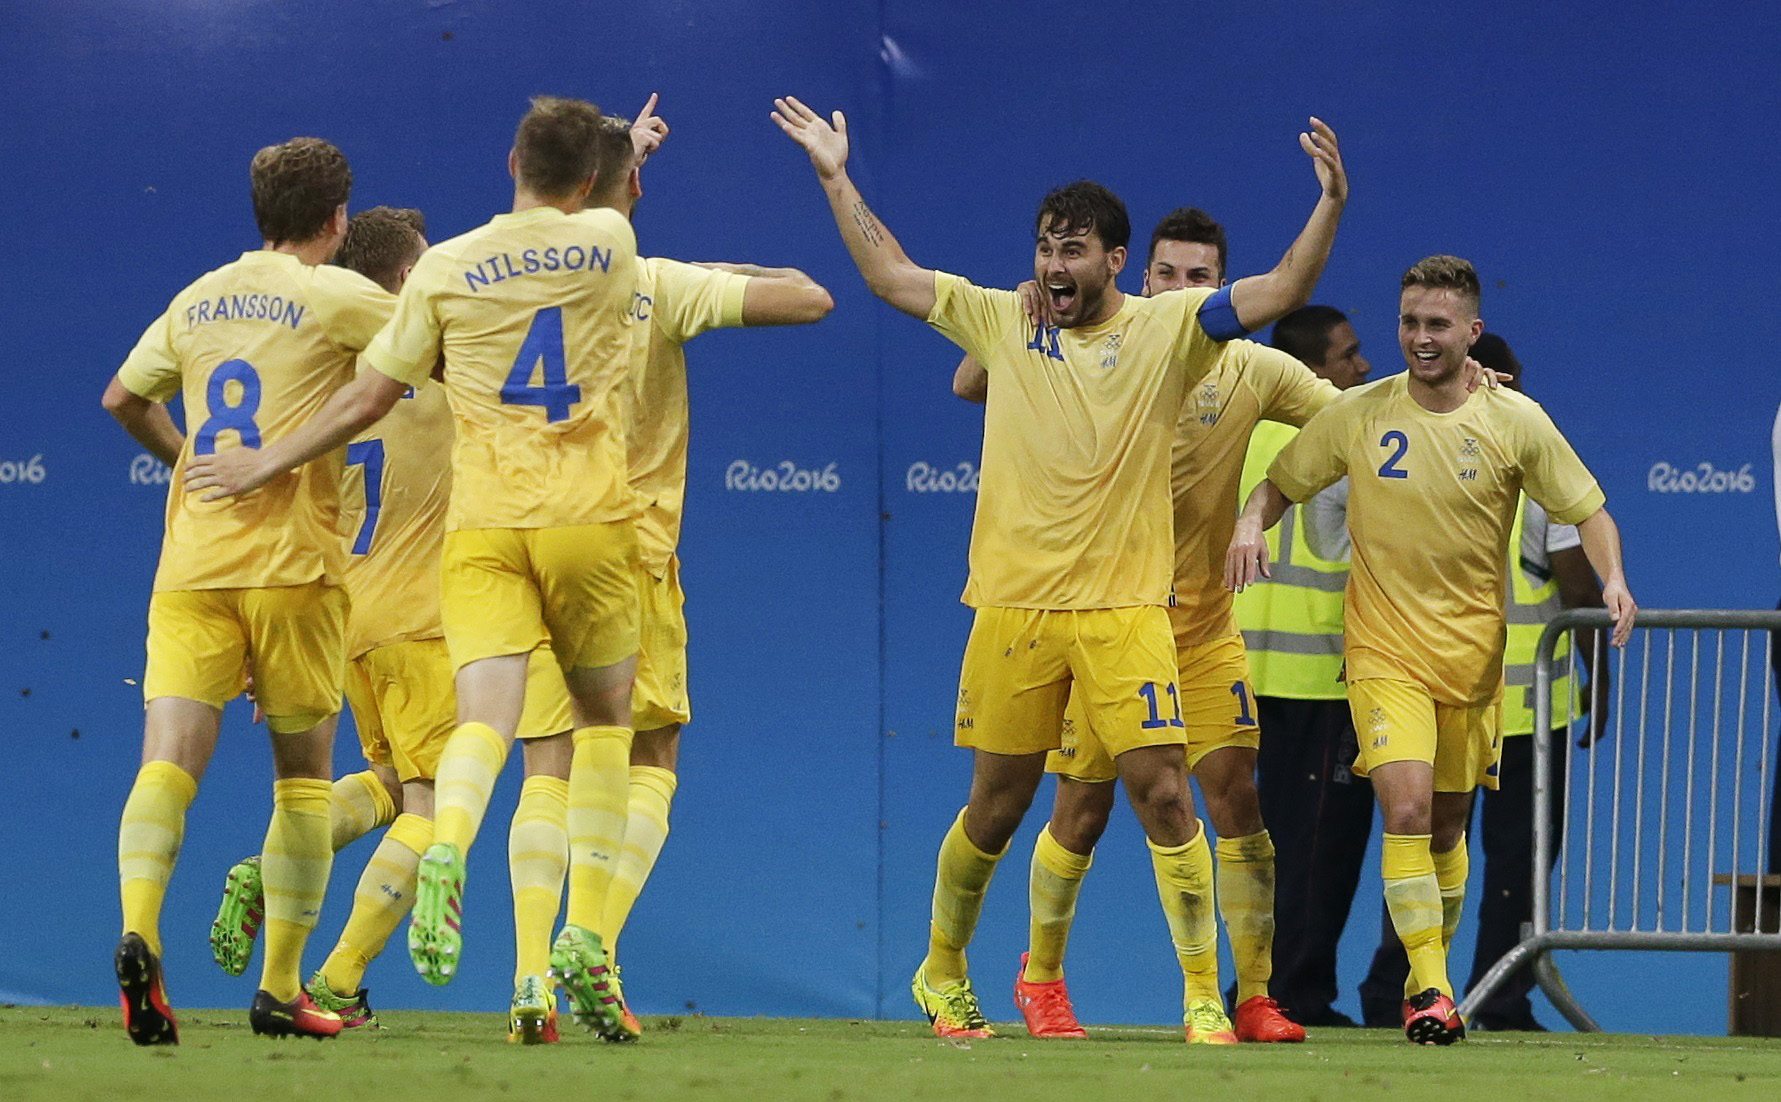 2016 Rio Olympics - Soccer - Preliminary - Men's First Round - Group B Sweden v Colombia - Amazonia Stadium - Manaus, Brazil - 04/08/2016. Astrit Ajdarevic (SWE) of Sweden celebrates after scoring a goal. REUTERS/Bruno Kelly FOR EDITORIAL USE ONLY. NOT FOR SALE FOR MARKETING OR ADVERTISING CAMPAIGNS.